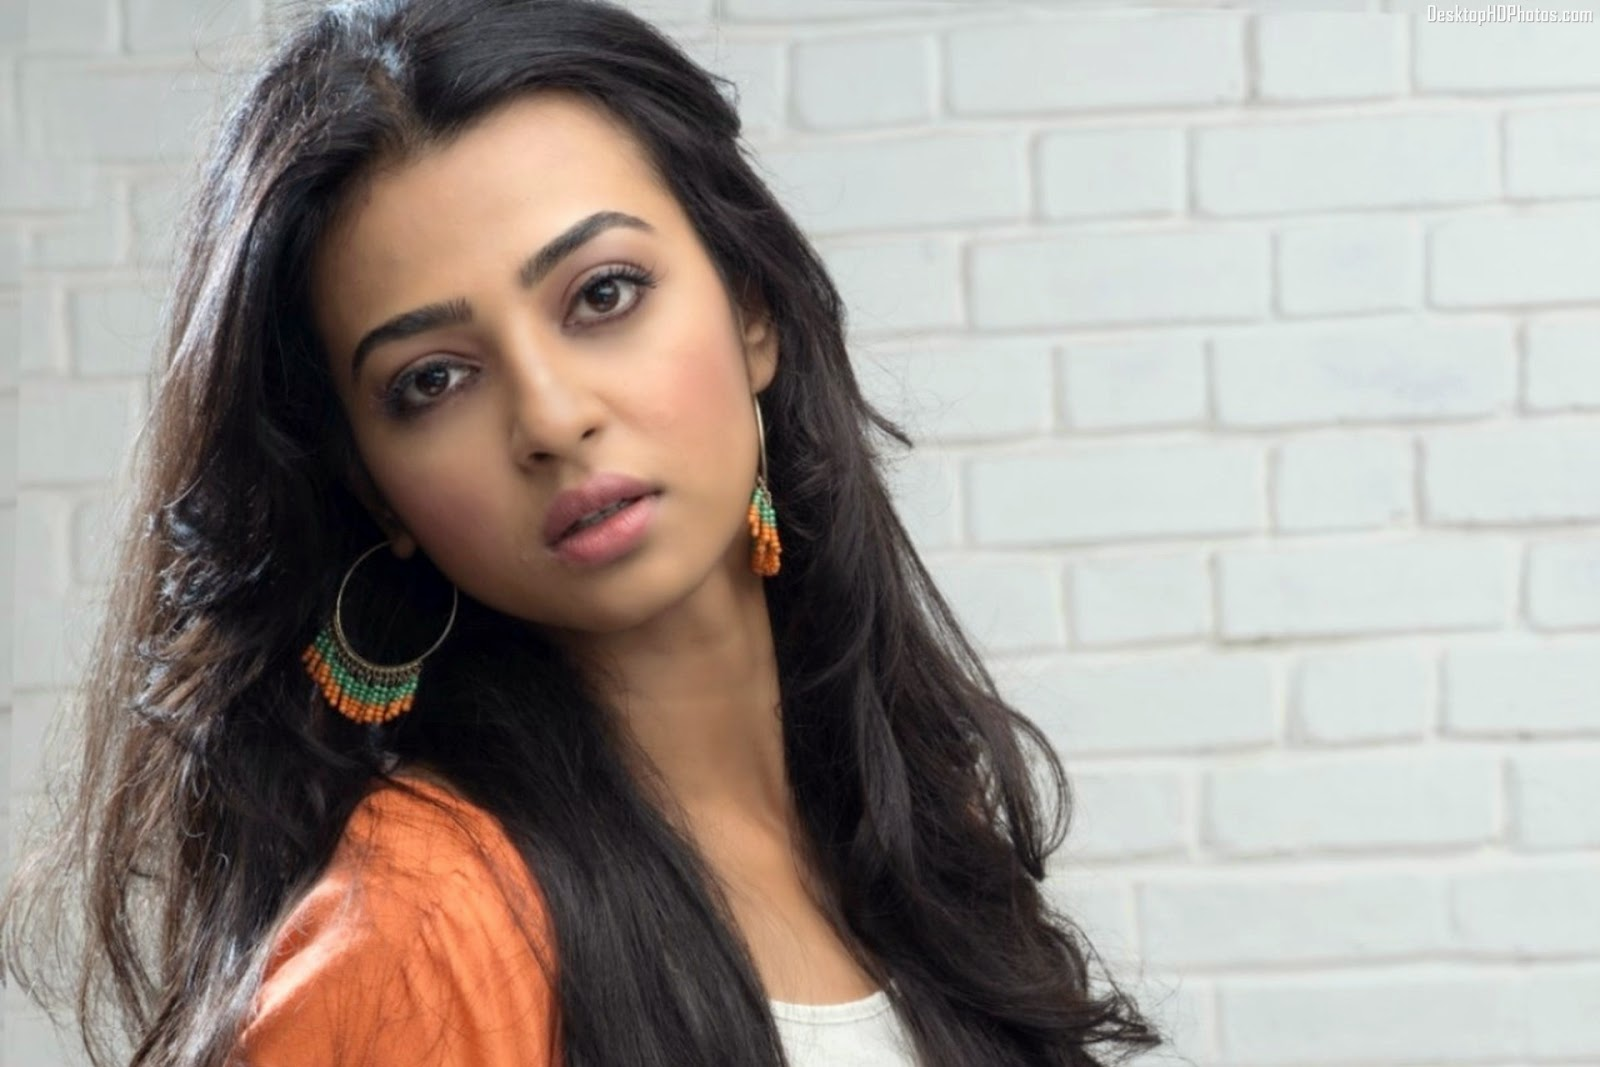 Radhika Apte Wallpapers